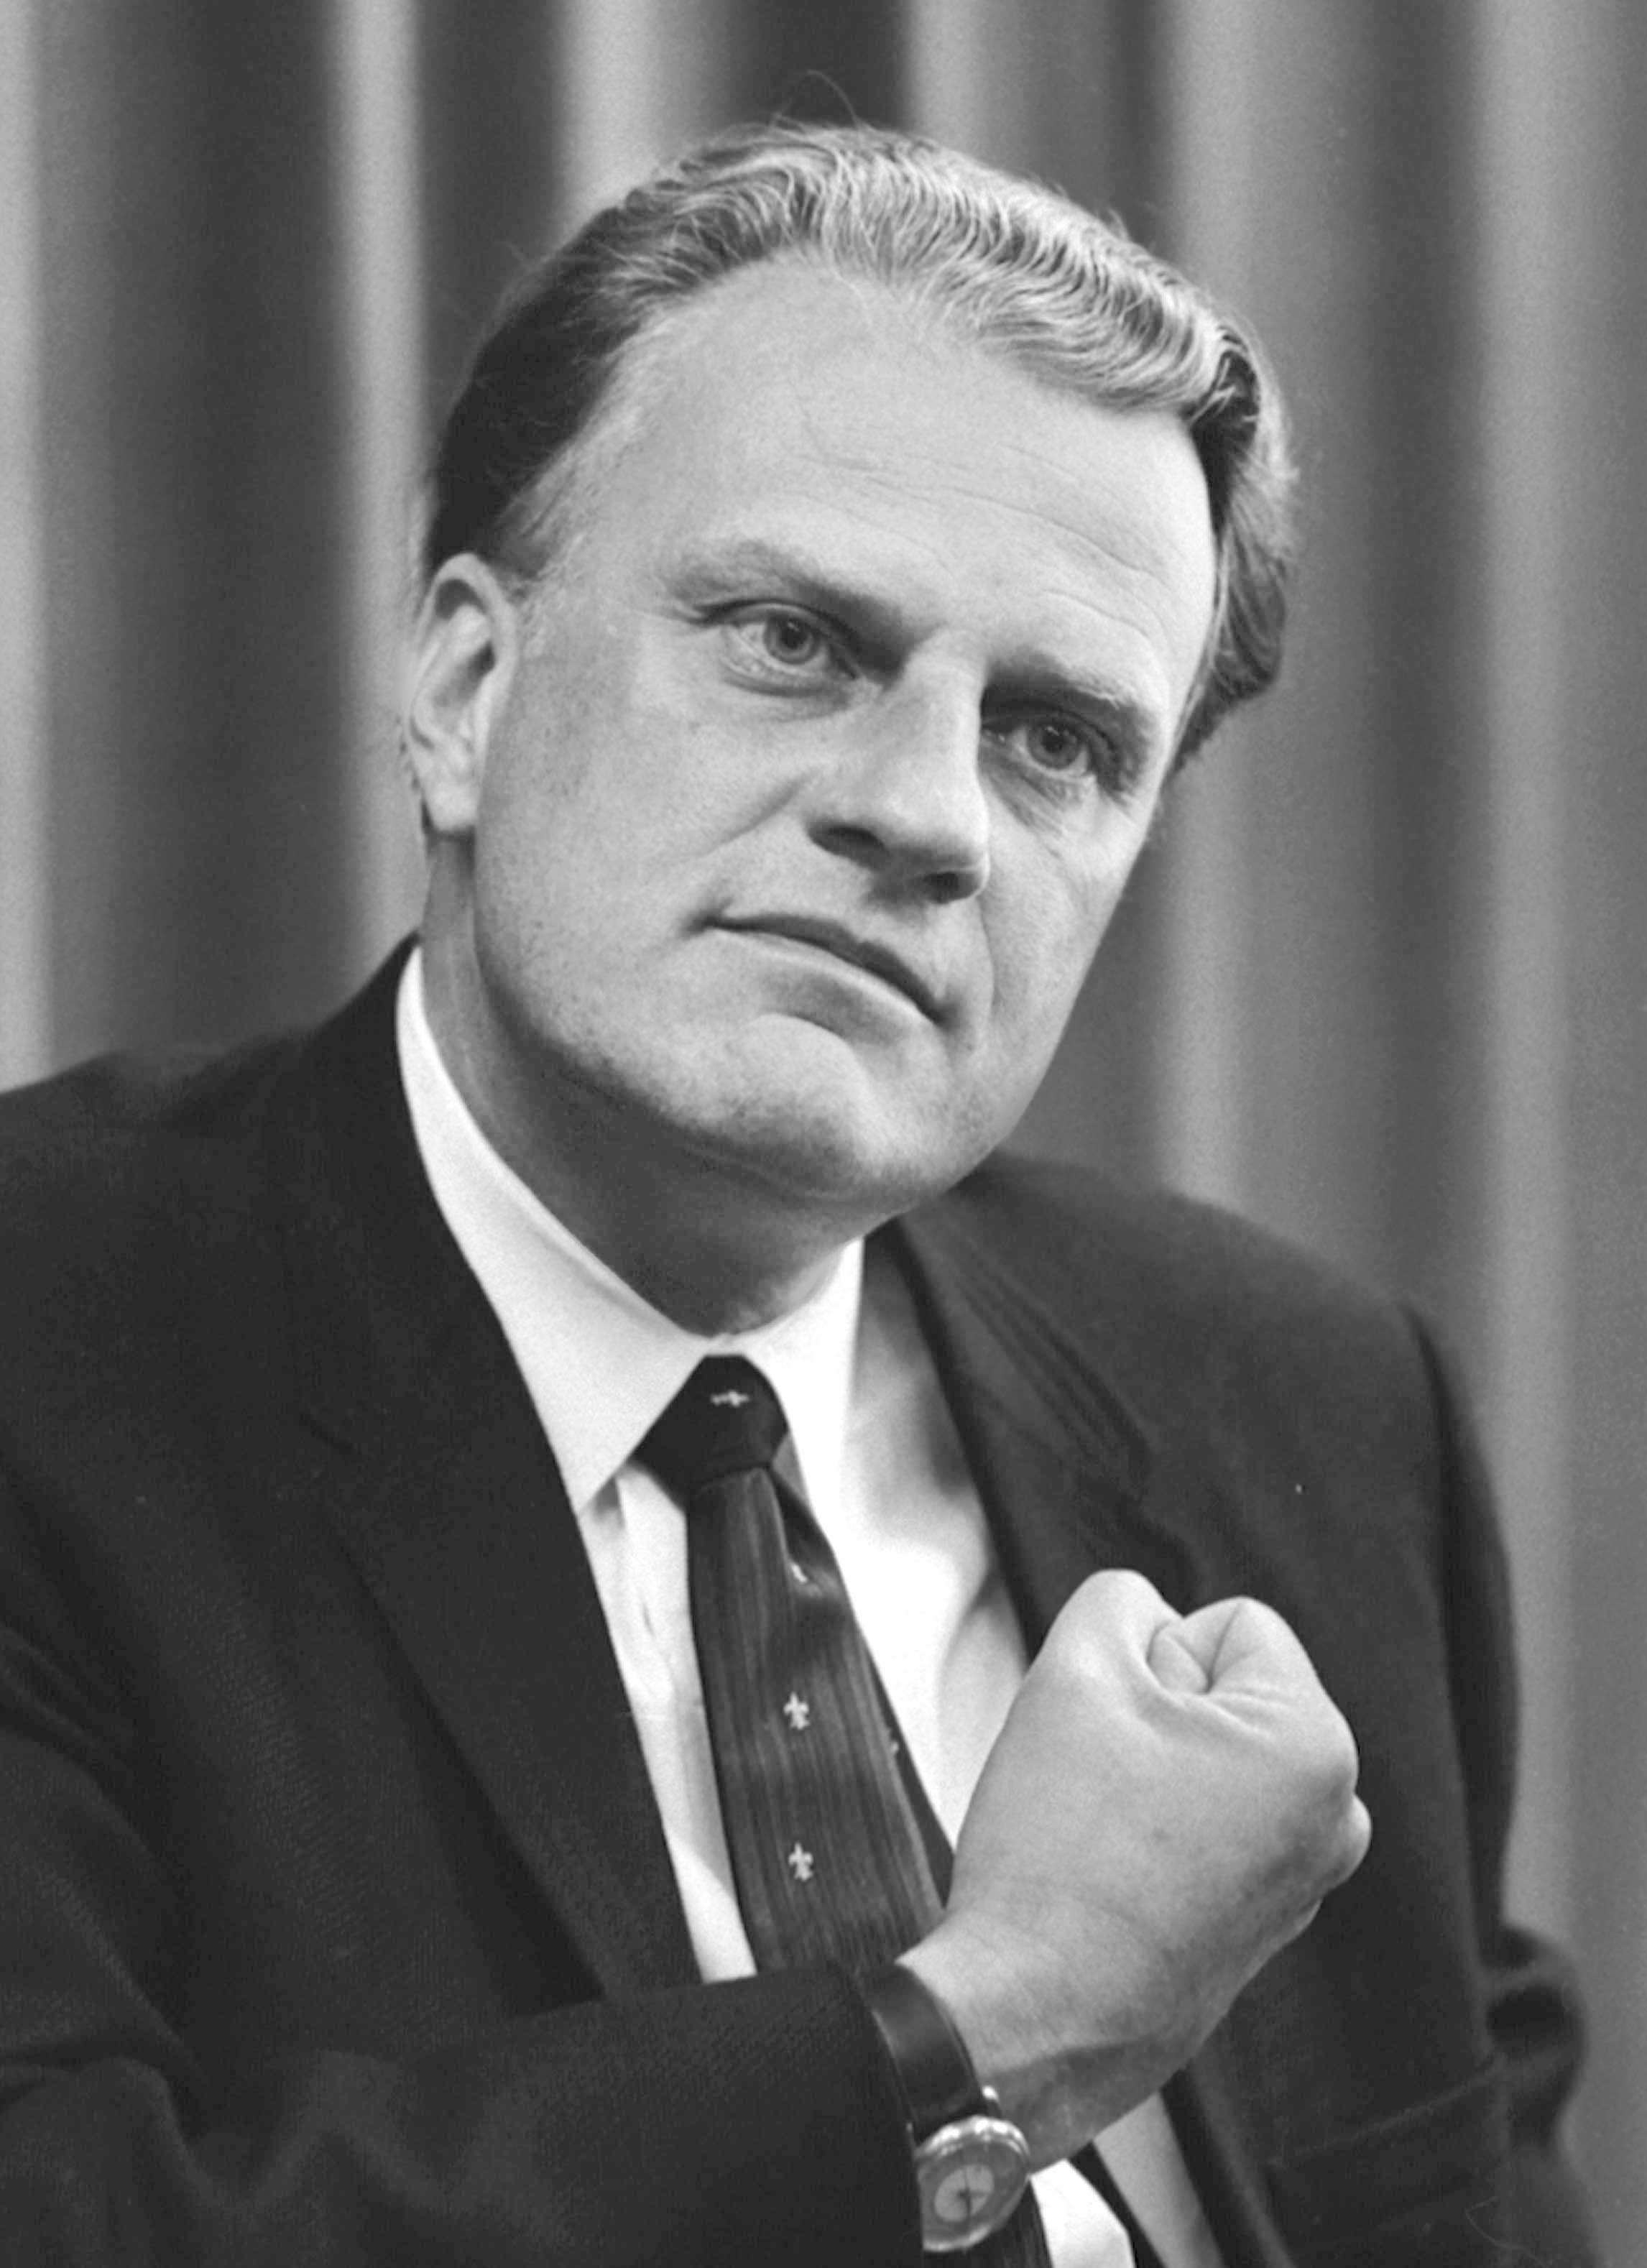 File:Billy Graham bw photo, April 11, 1966.jpg - Wikimedia ...